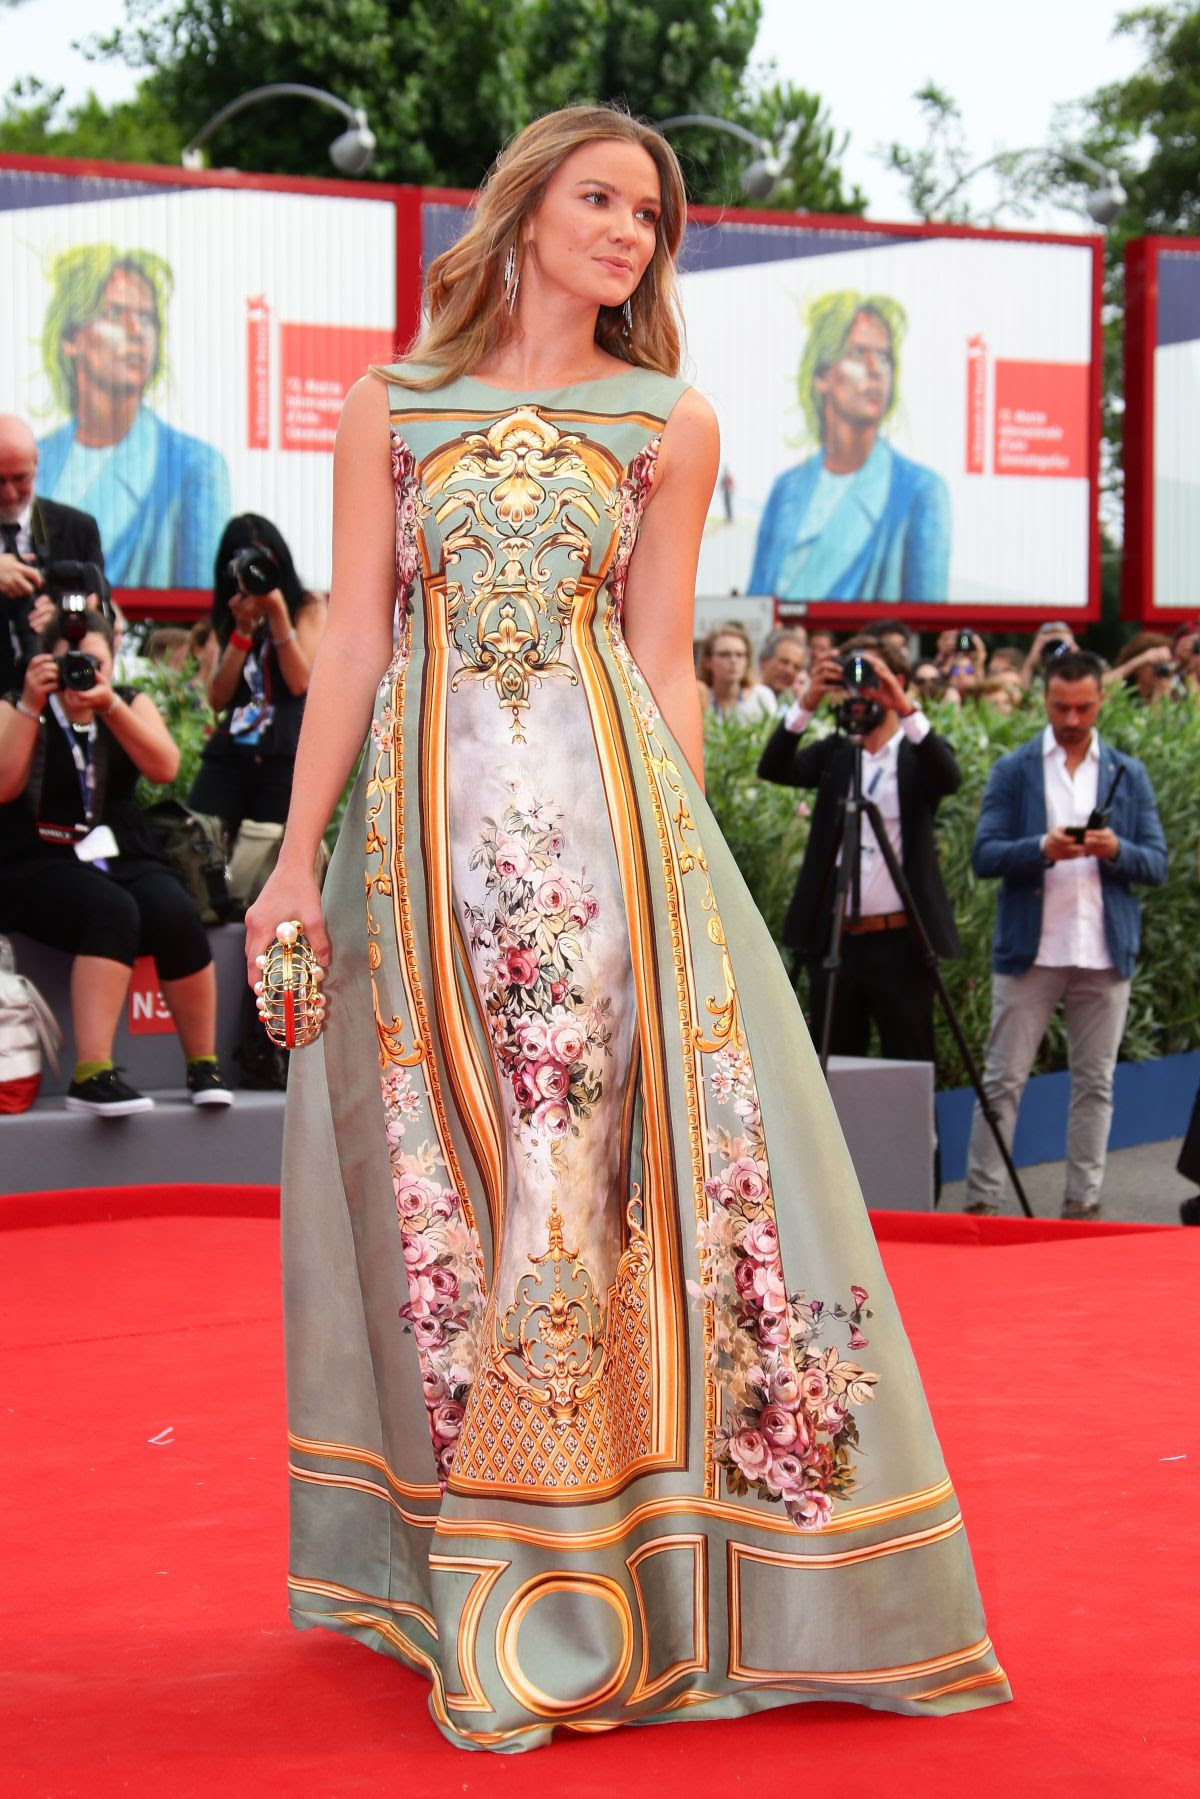 http://www.hawtcelebs.com/wp-content/uploads/2015/09/fiammetta-cicogna-at-everest-premiere-and-72nd-venice-film-festival-opening-ceremony_1.jpg